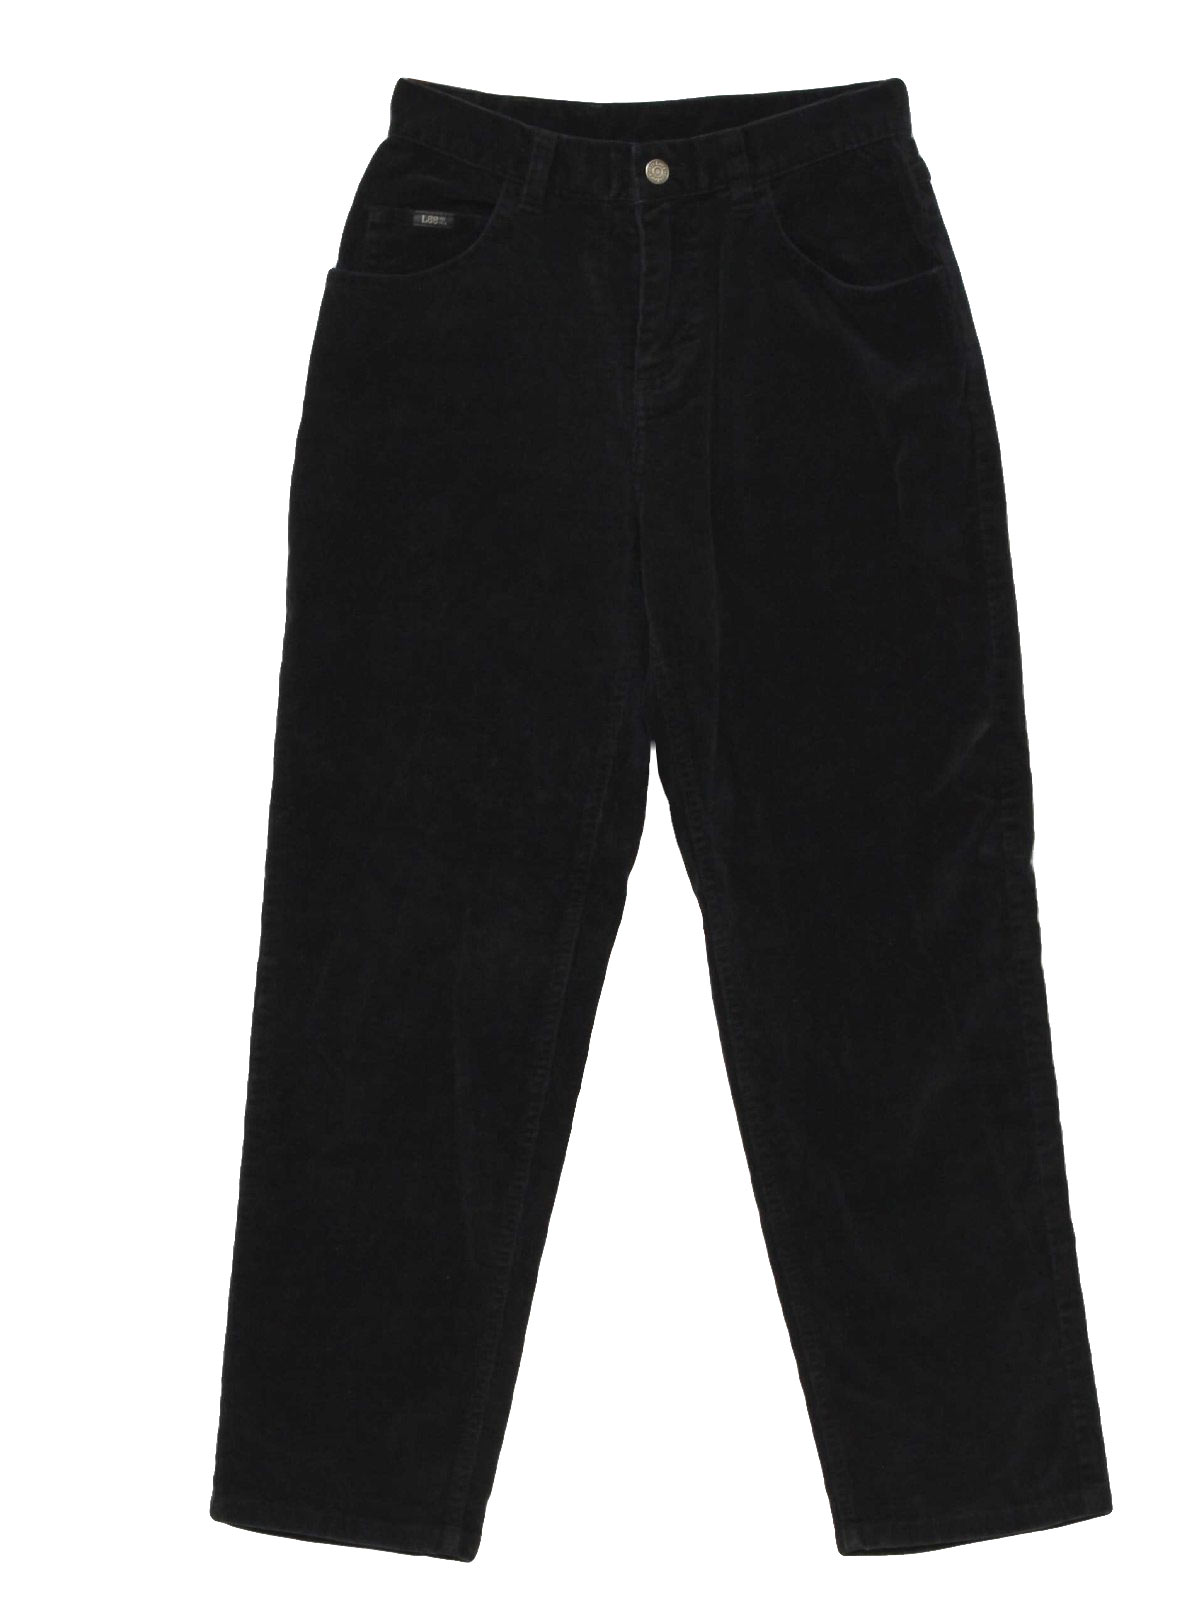 90's Lee Pants: 90s -Lee- Womens black cotton polyester corduroy ...